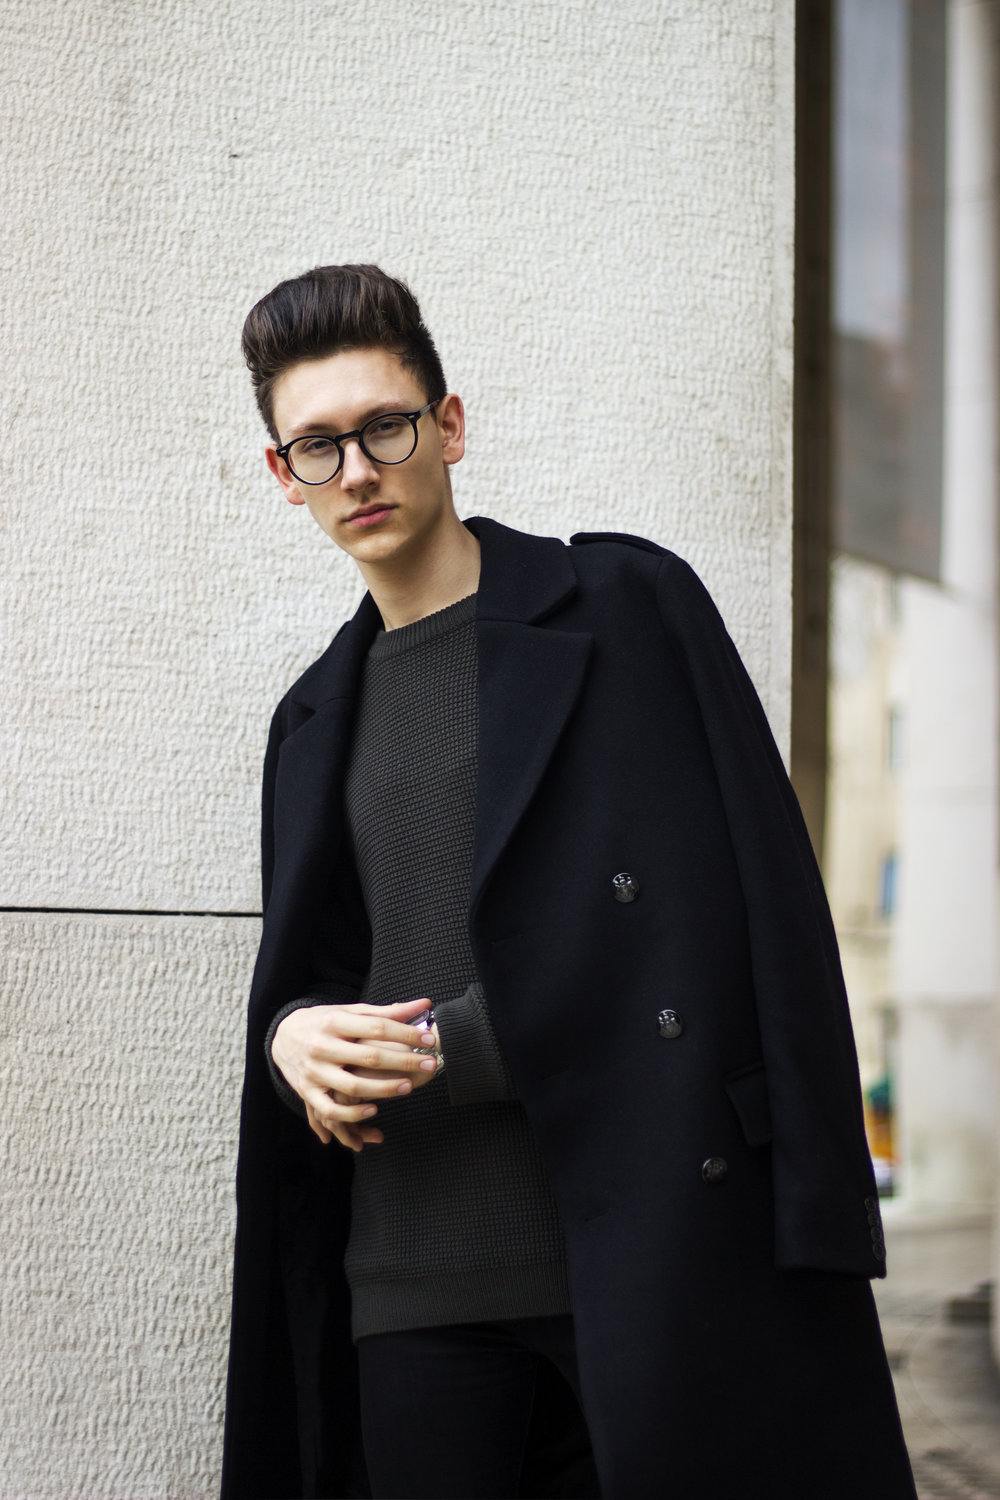 expensive-reality-luka-lajic-mens-fashion-blog-ootd-outfit-croatia-style-blogger-hrvatski-bloger (8).jpg